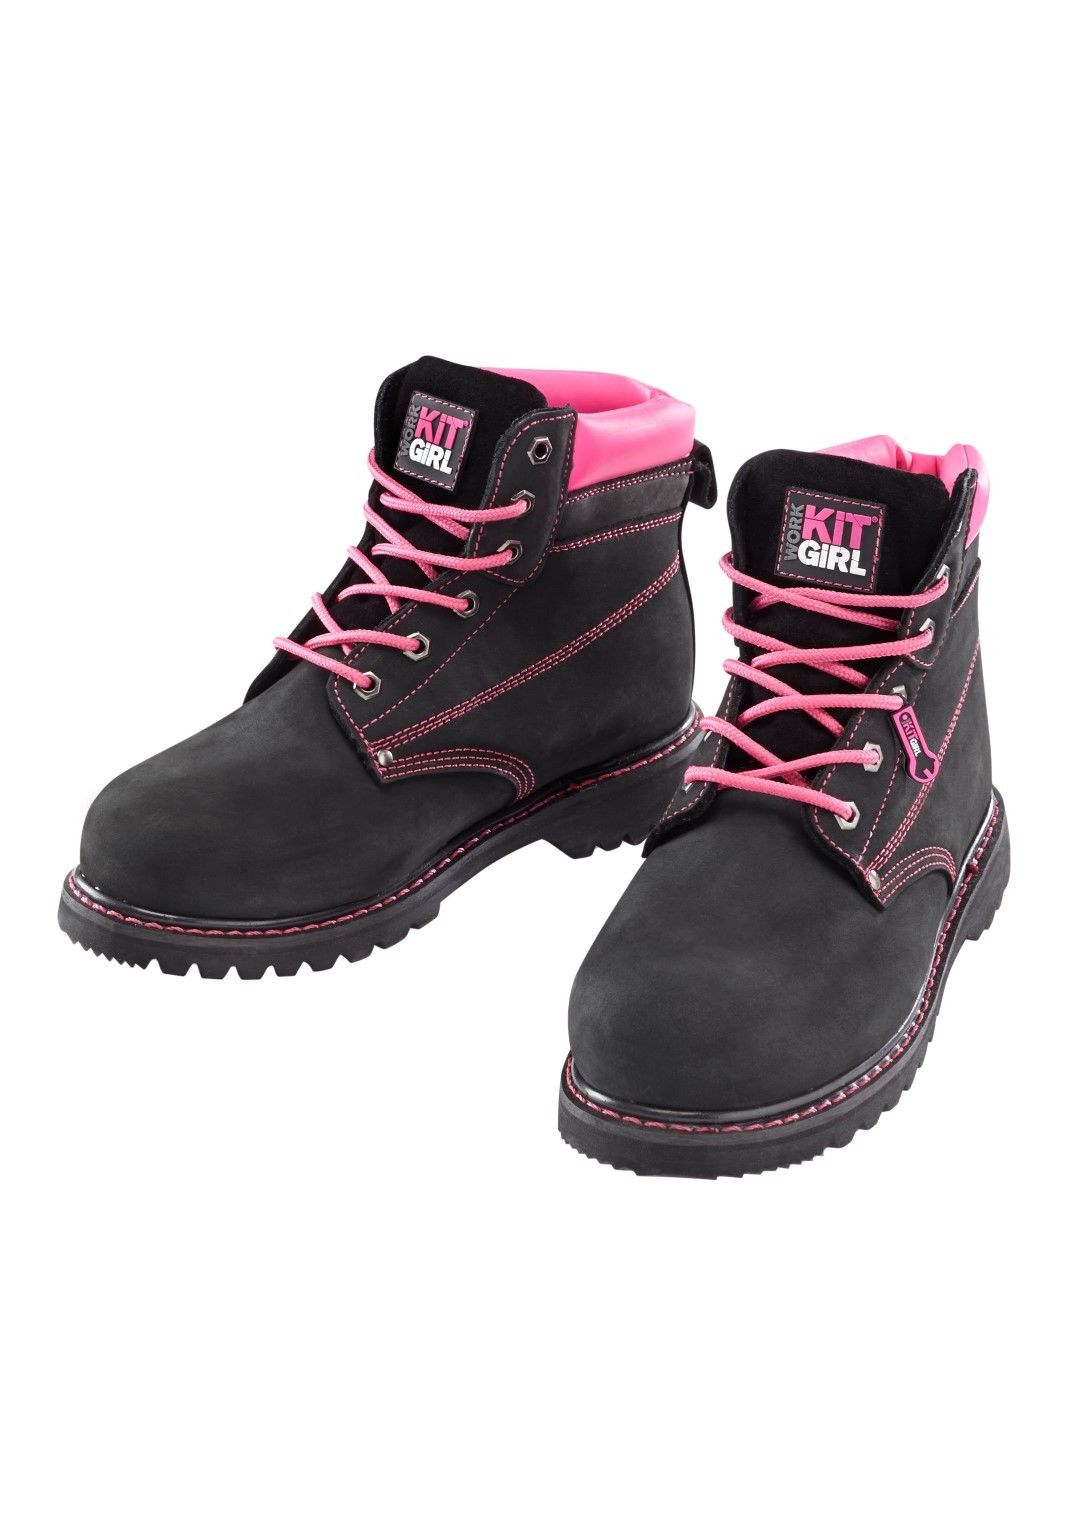 25fd228e86e Details about Work Kit Girl - Steel Toe Work Boots - Black - Ladies Steel  To Caps